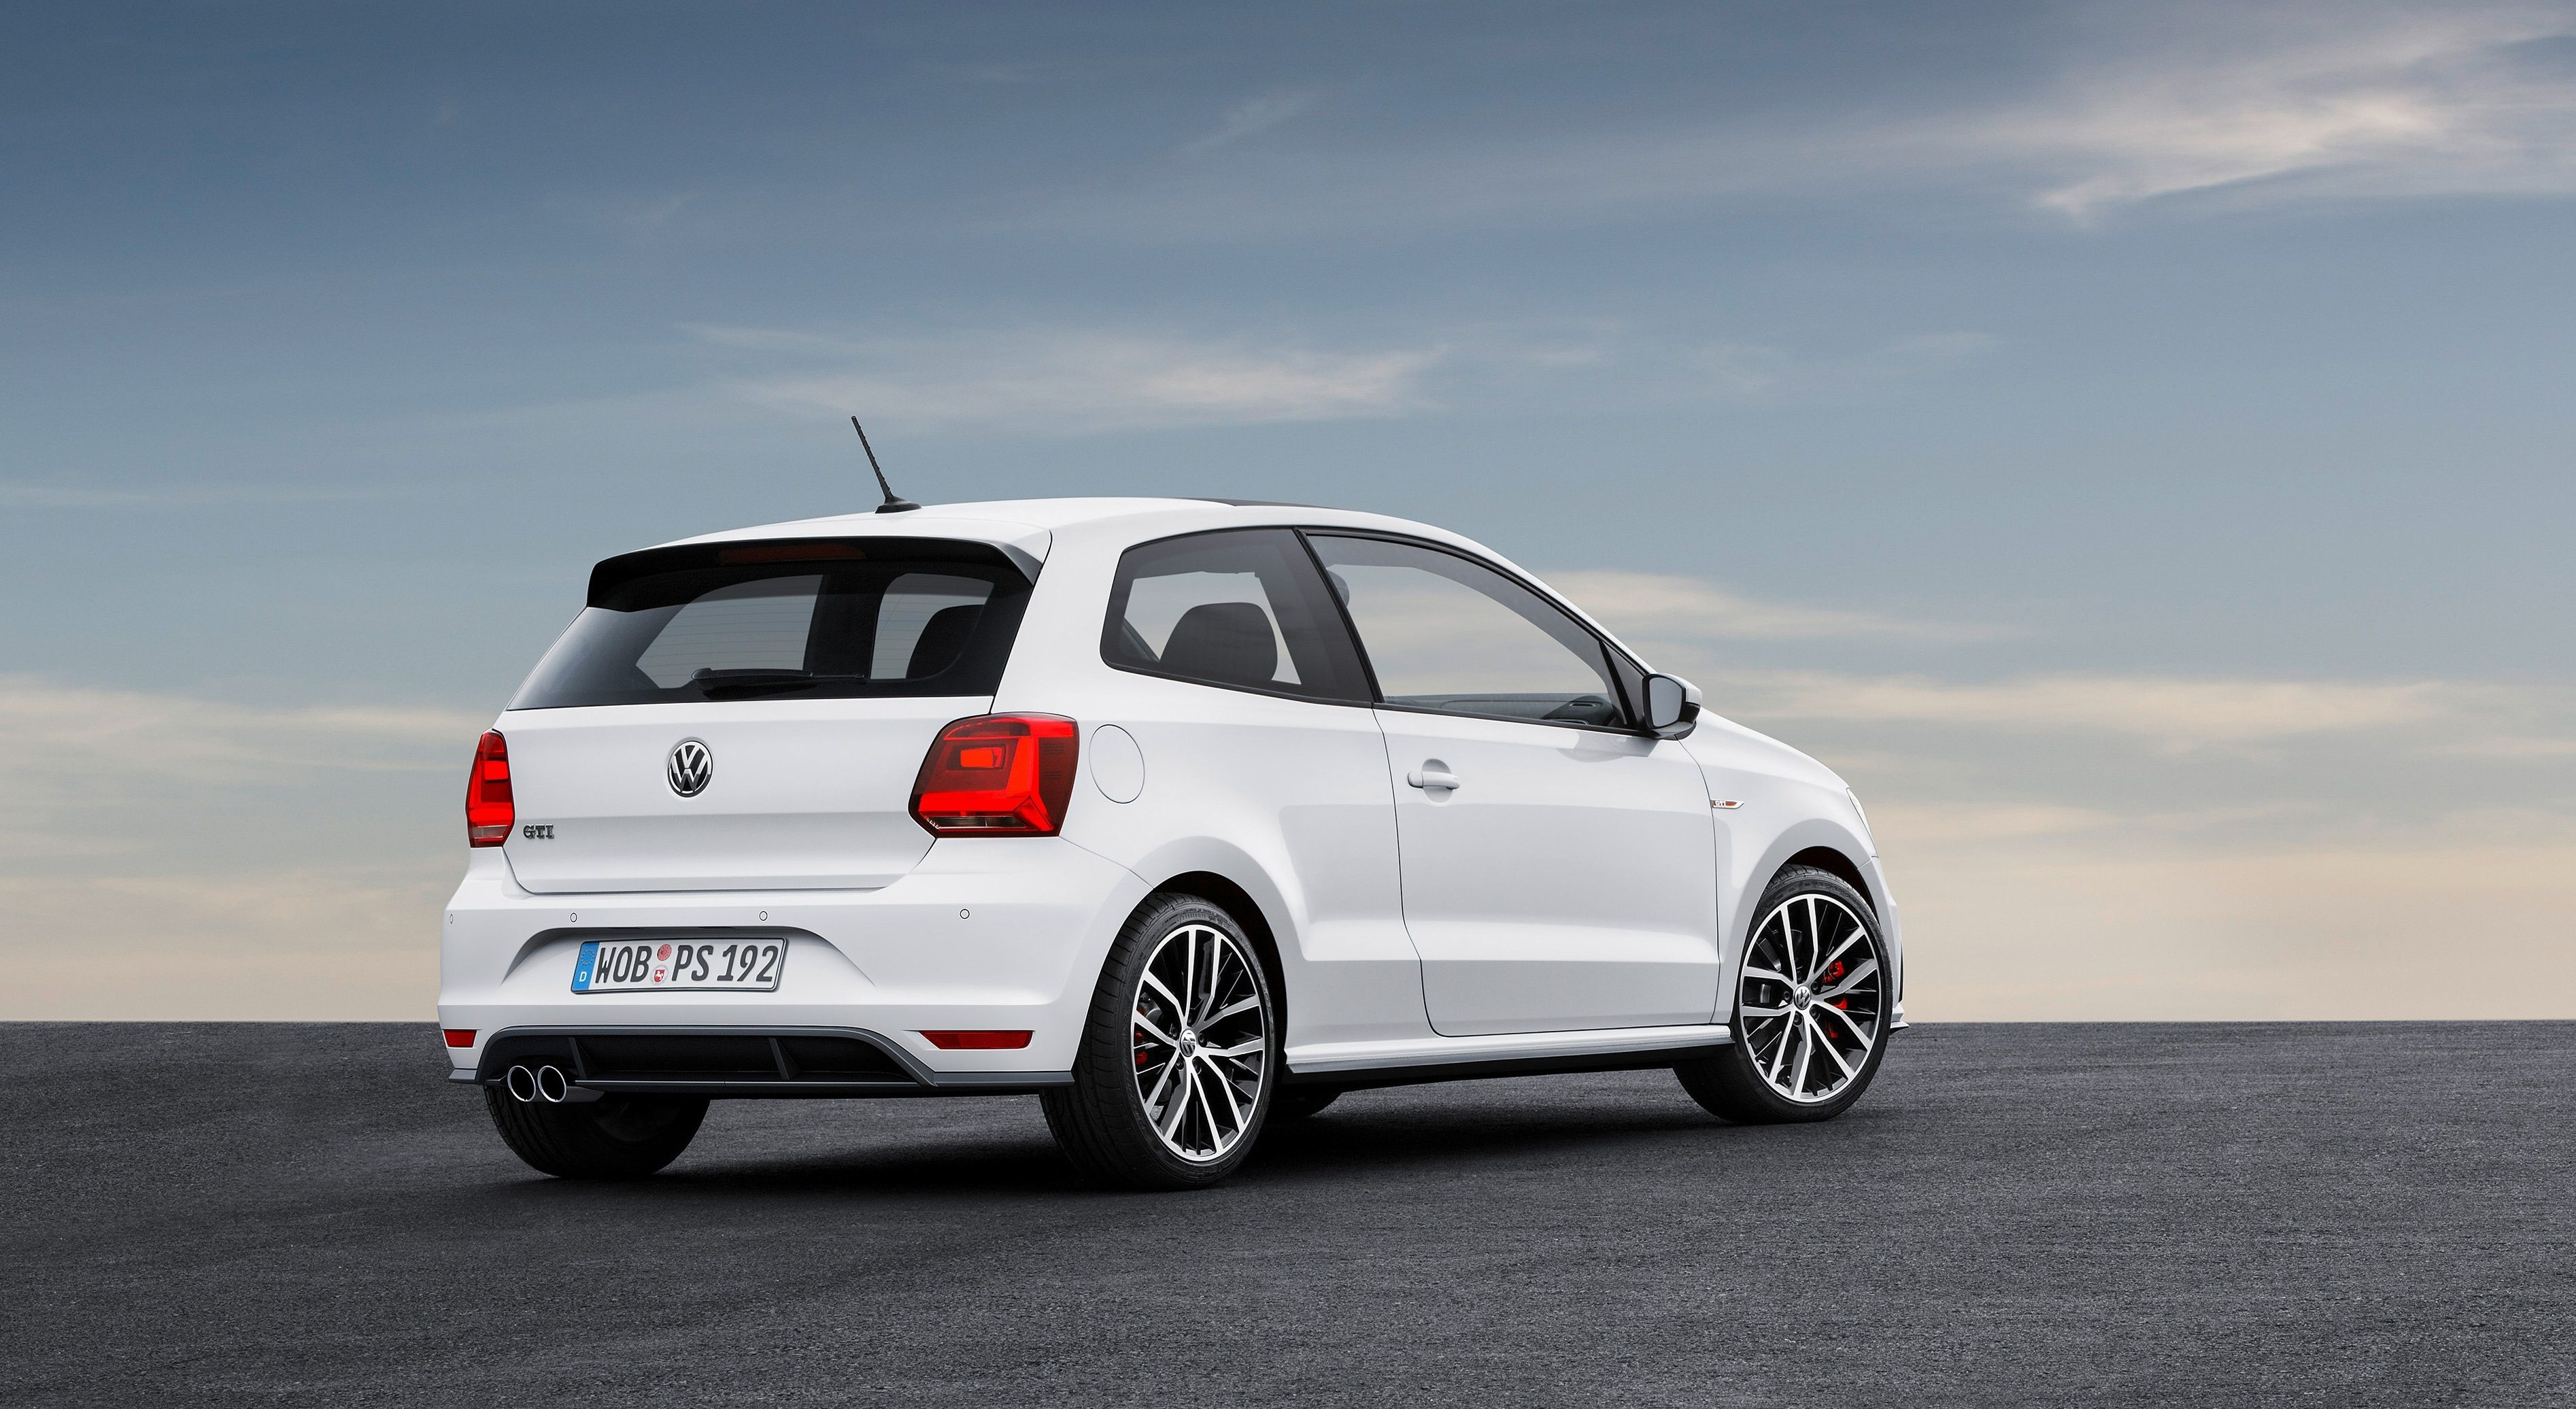 Volkswagen Polo Wallpapers Top Free Volkswagen Polo Backgrounds Wallpaperaccess